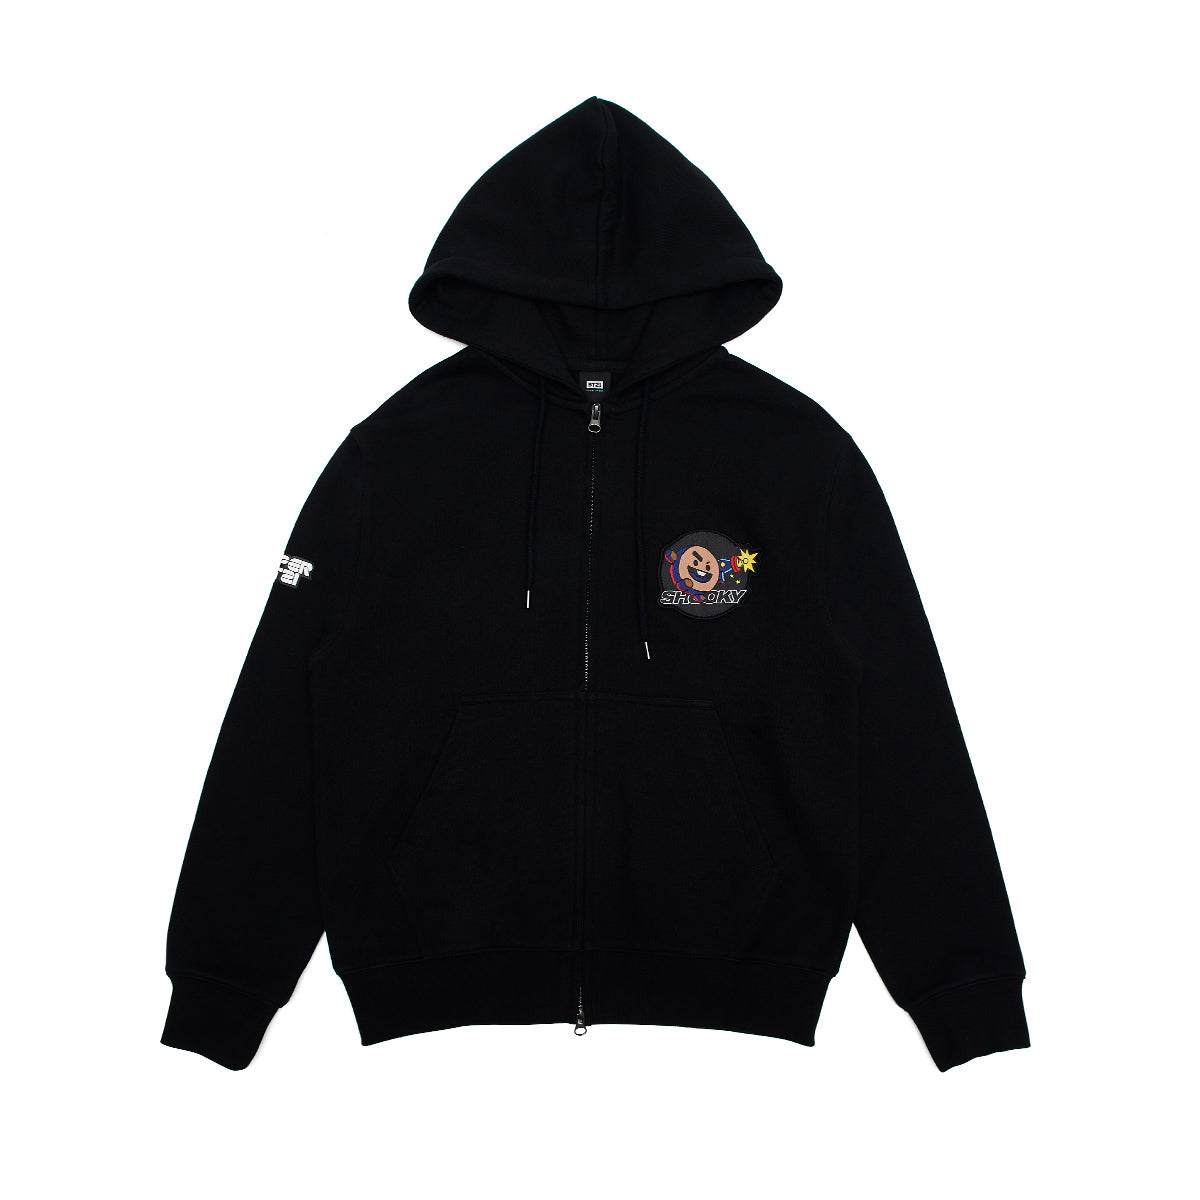 BT21 SHOOKY Space Squad Zip Up Hooded